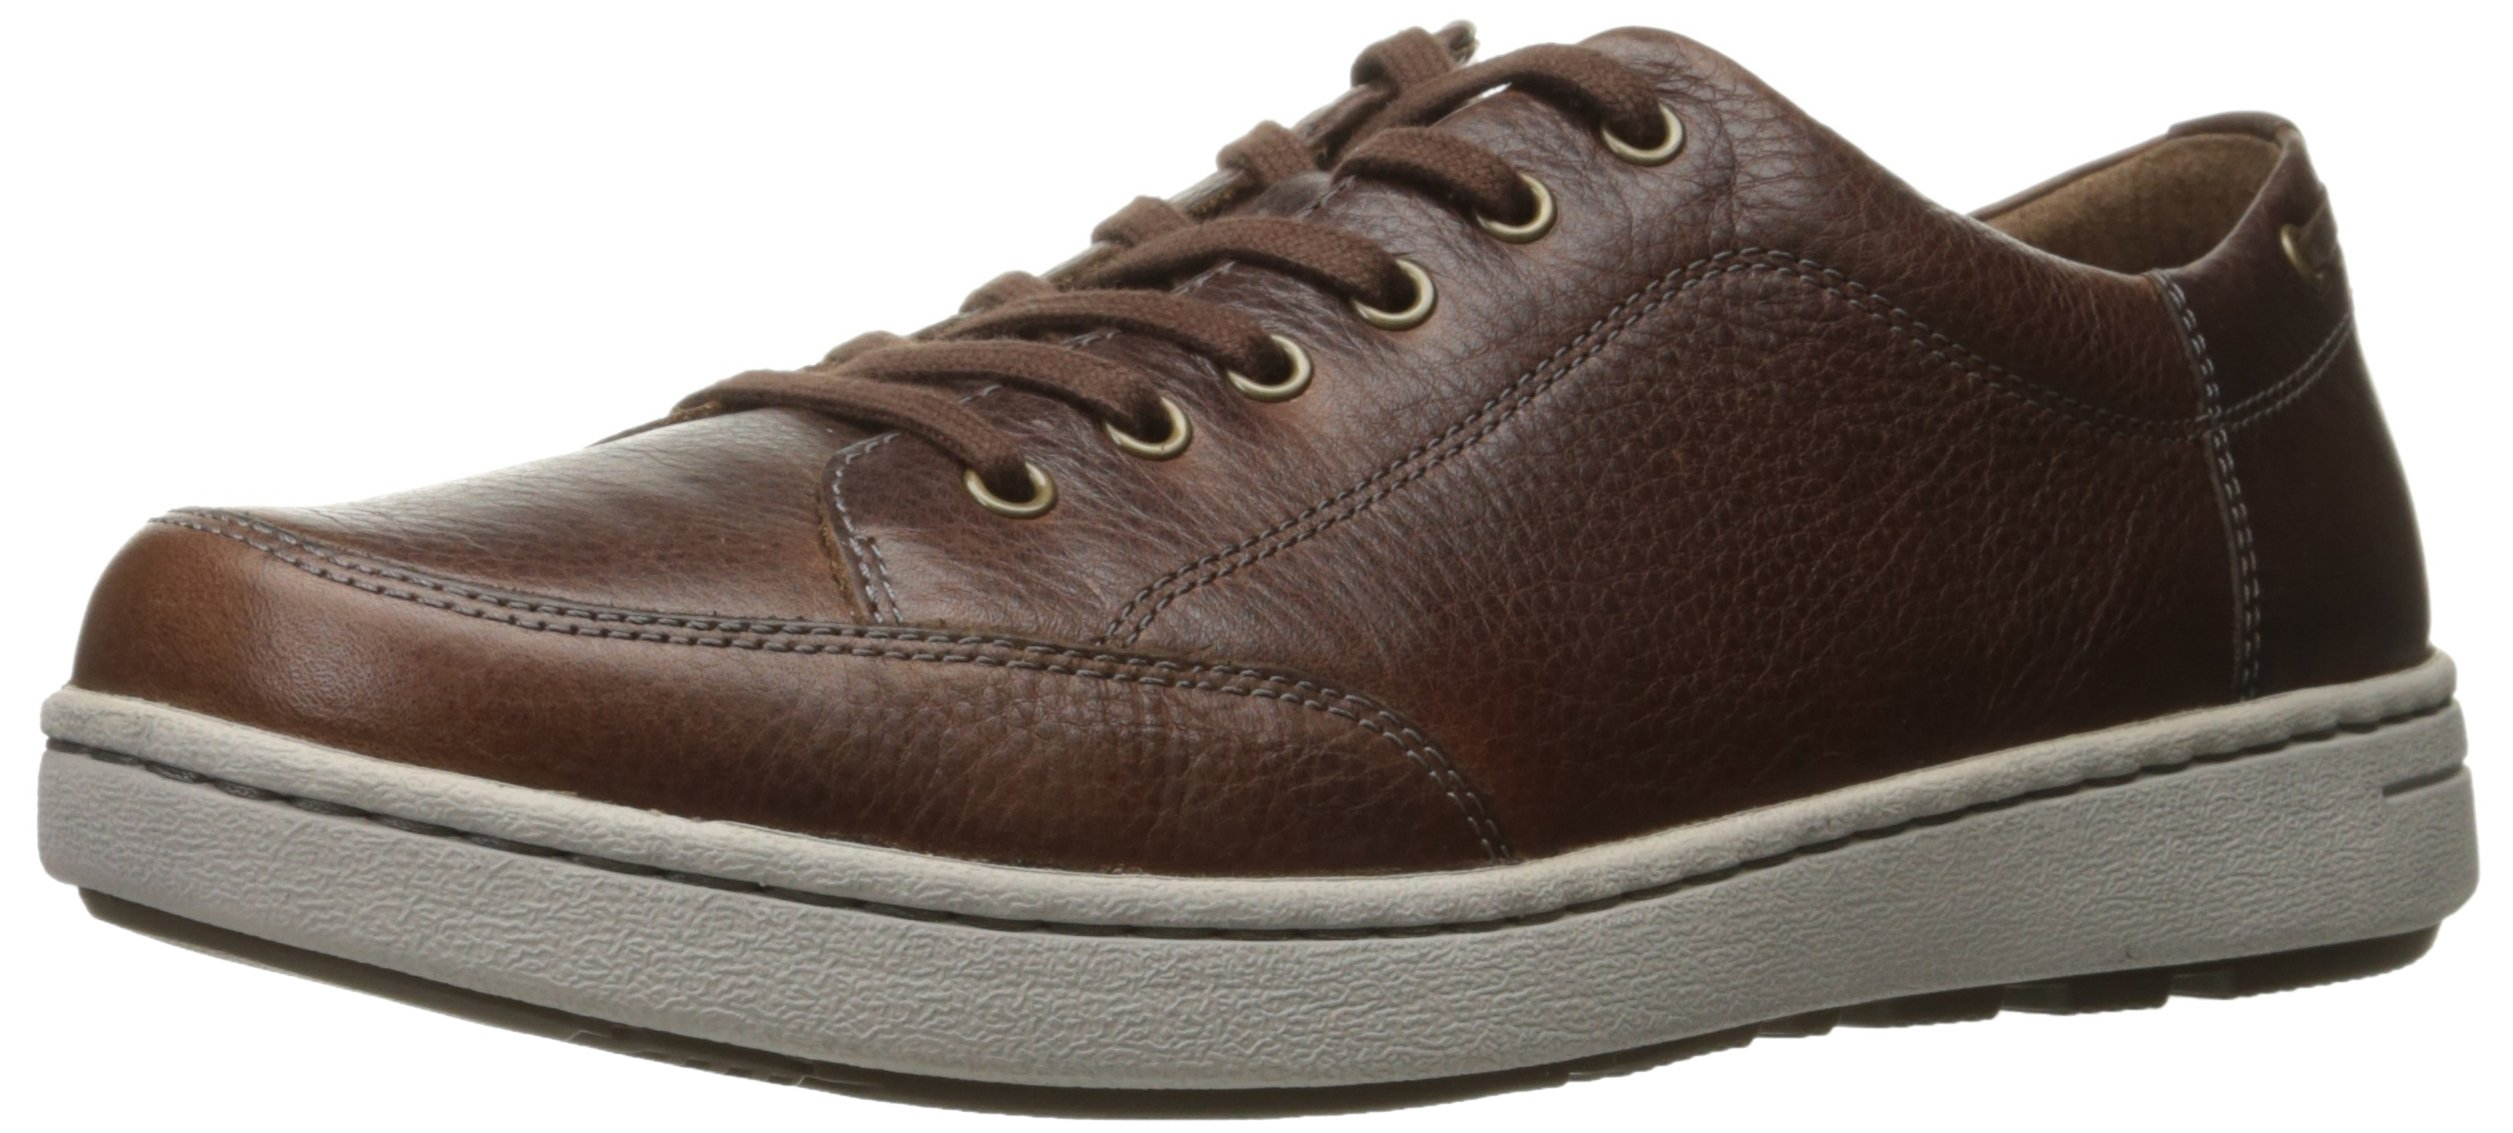 Dansko Men's Vaughn Fashion Sneaker, Brown Tumbled Pull up, 46 EU/12.5-13 M US